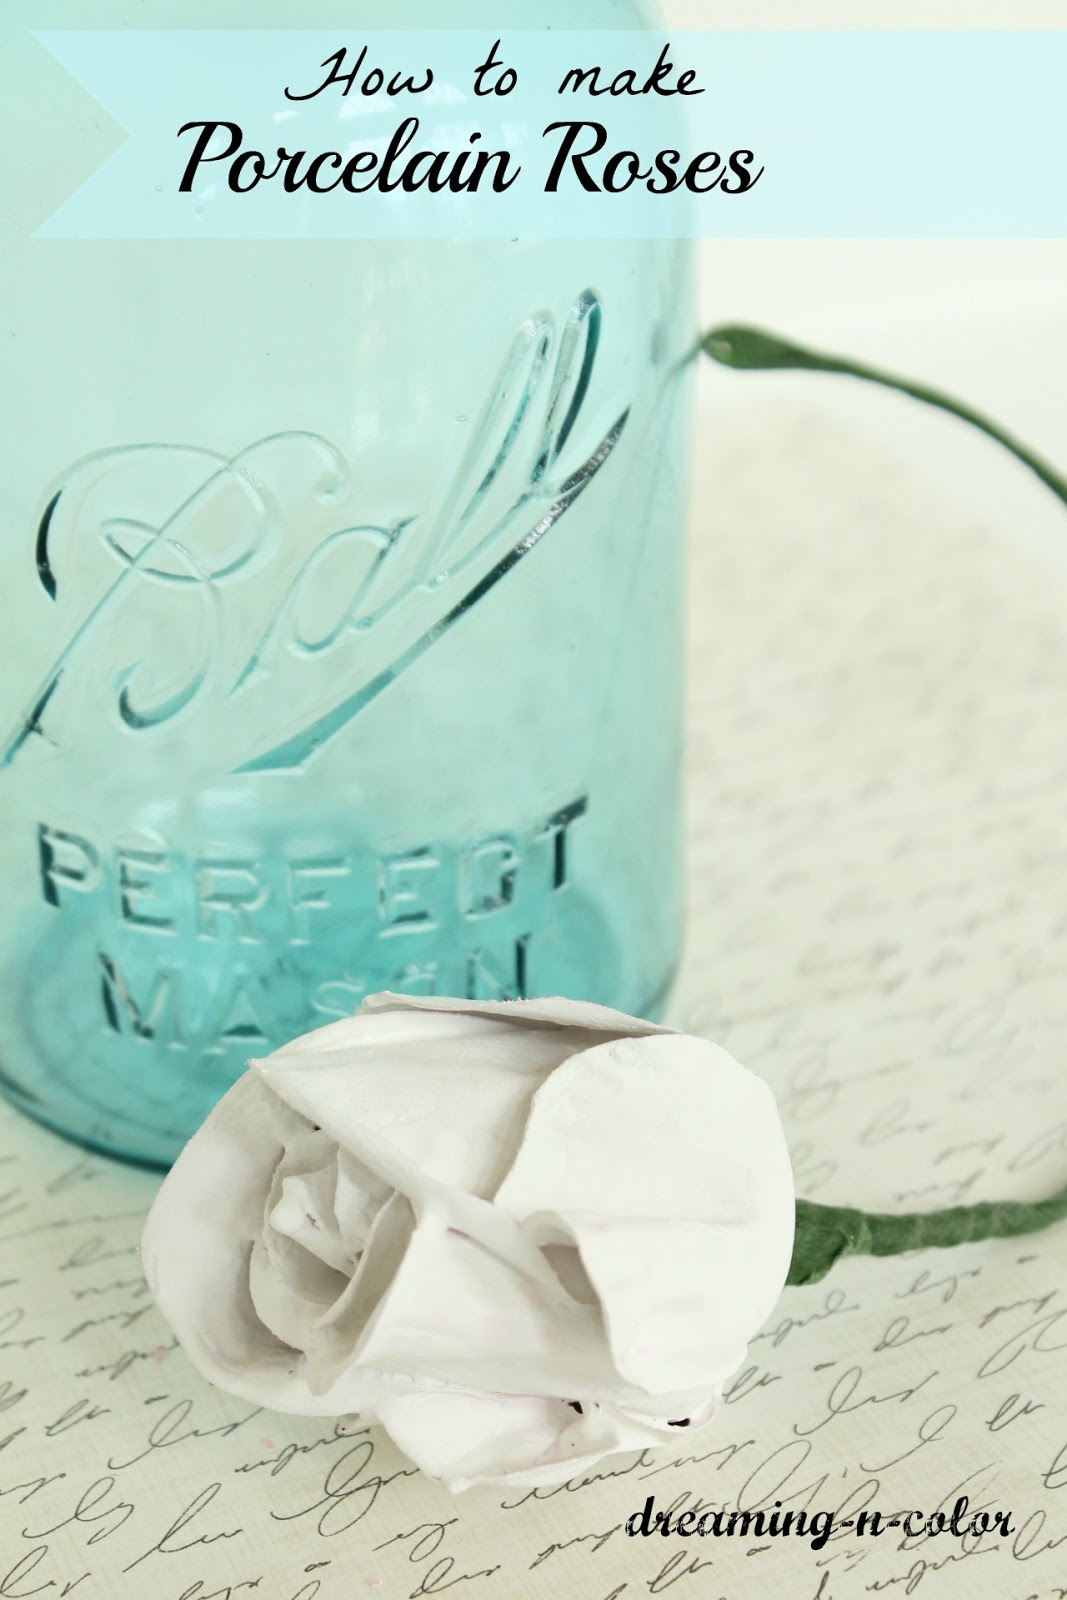 dreamingincolor: How to make Porcelain Roses/A Flower\'s Meaning